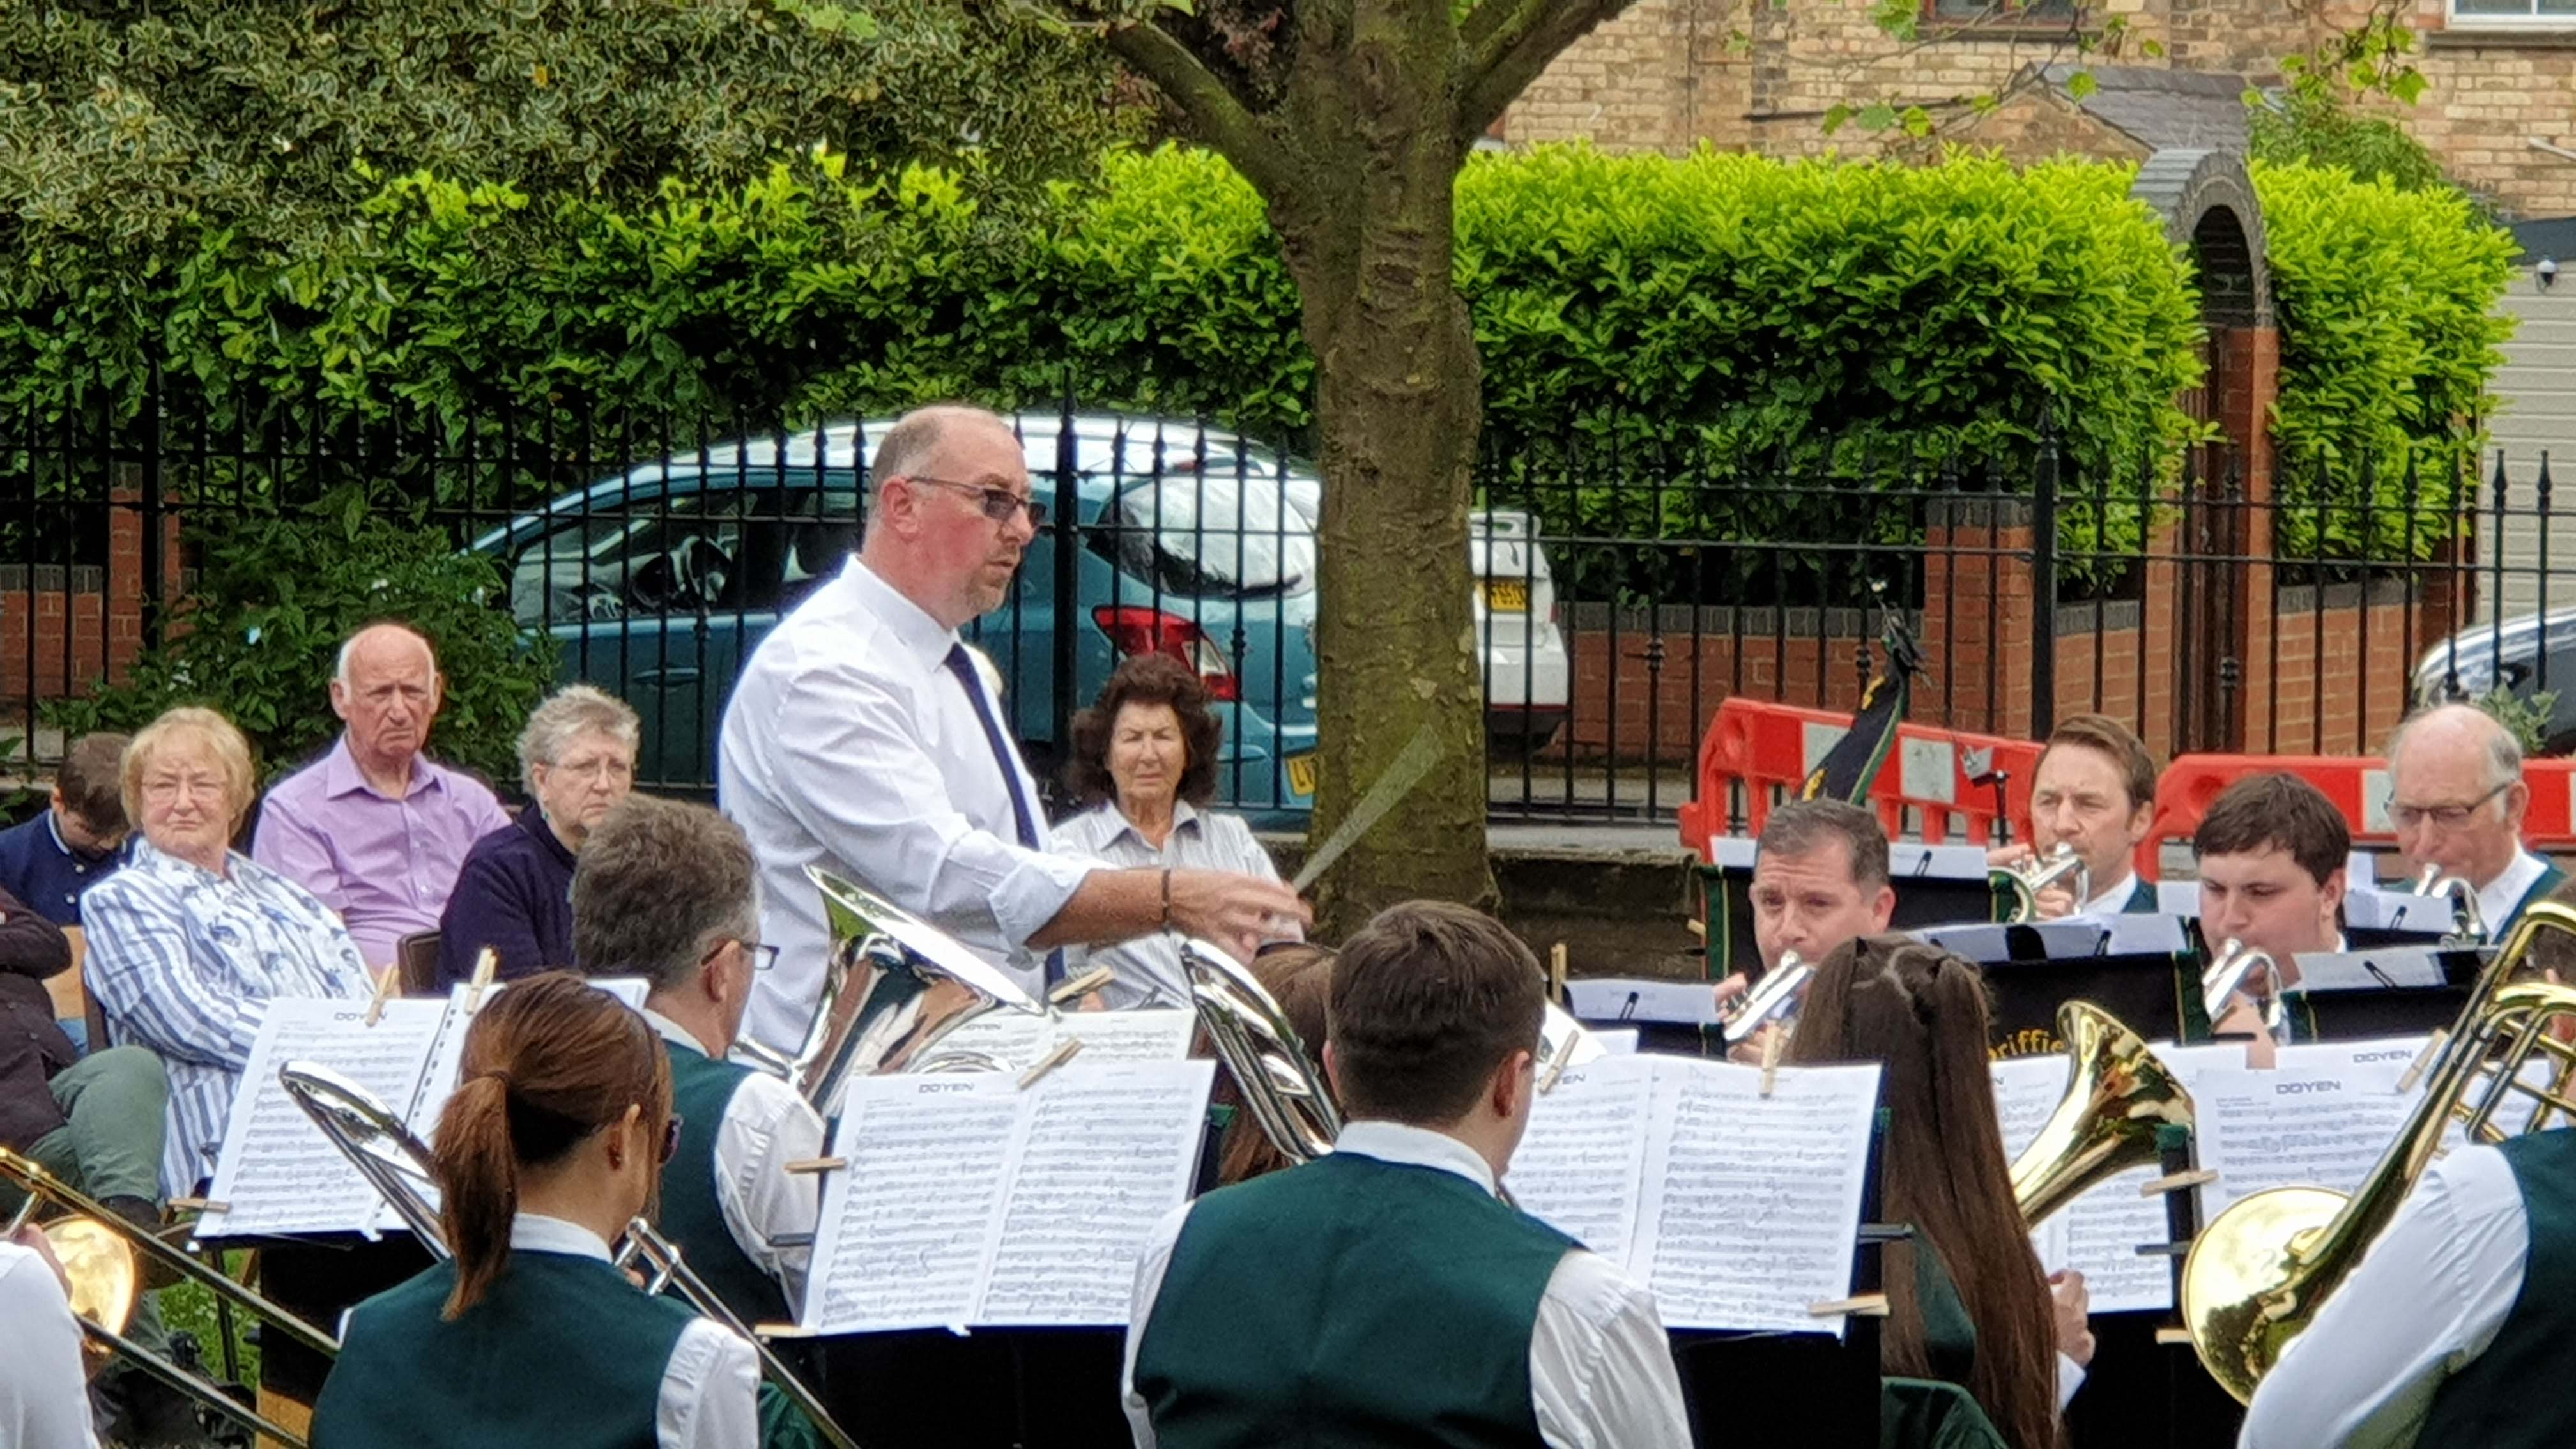 Hornsea-Conductor in action!